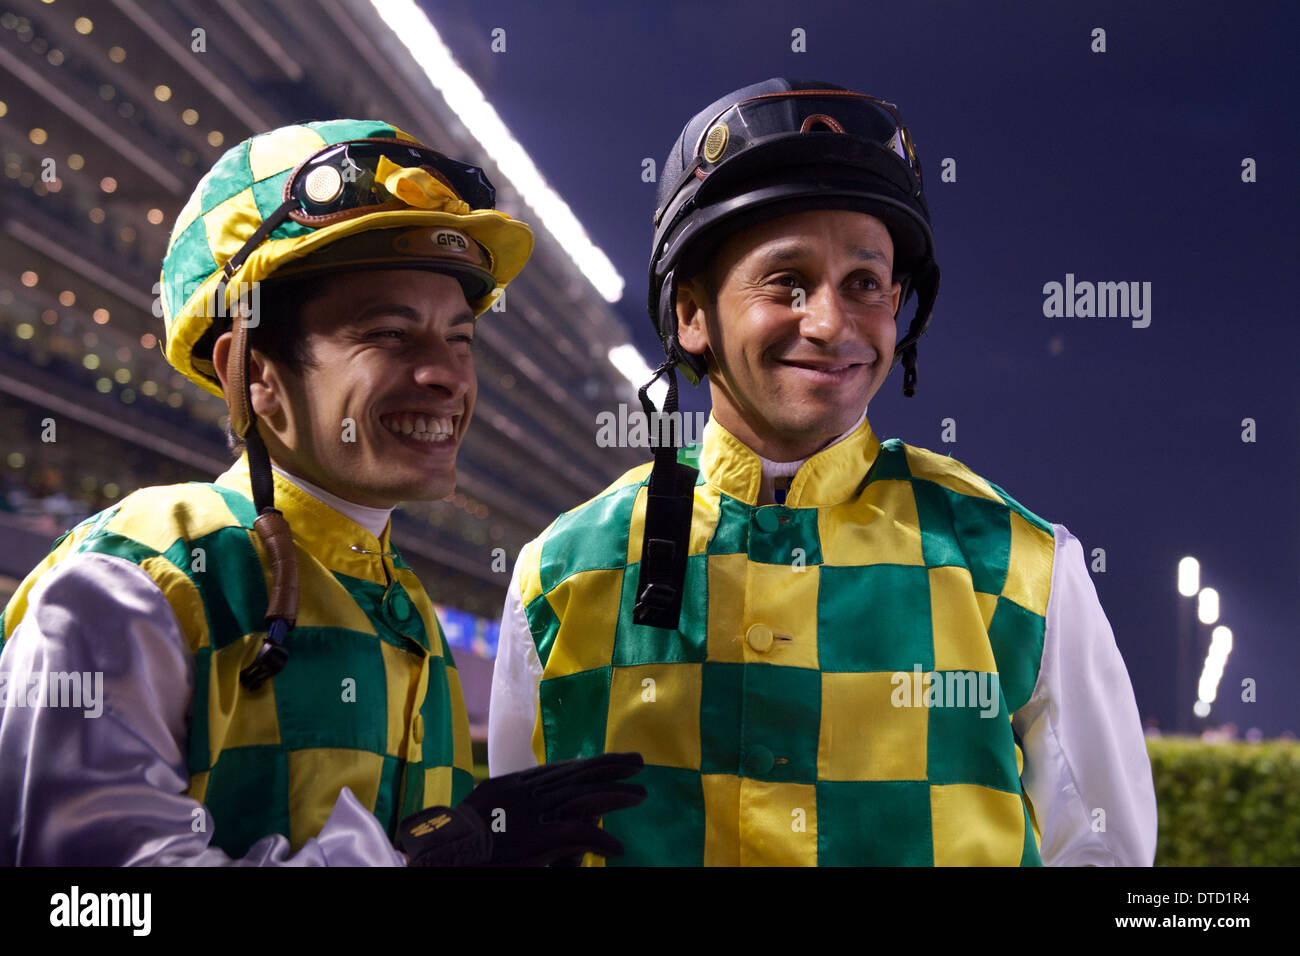 Godolphin Jockeys Royston Ffrench and Silvestre De Sousa in front of the Meydan Grandstand during the Dubai World Cup Carnival - Stock Image